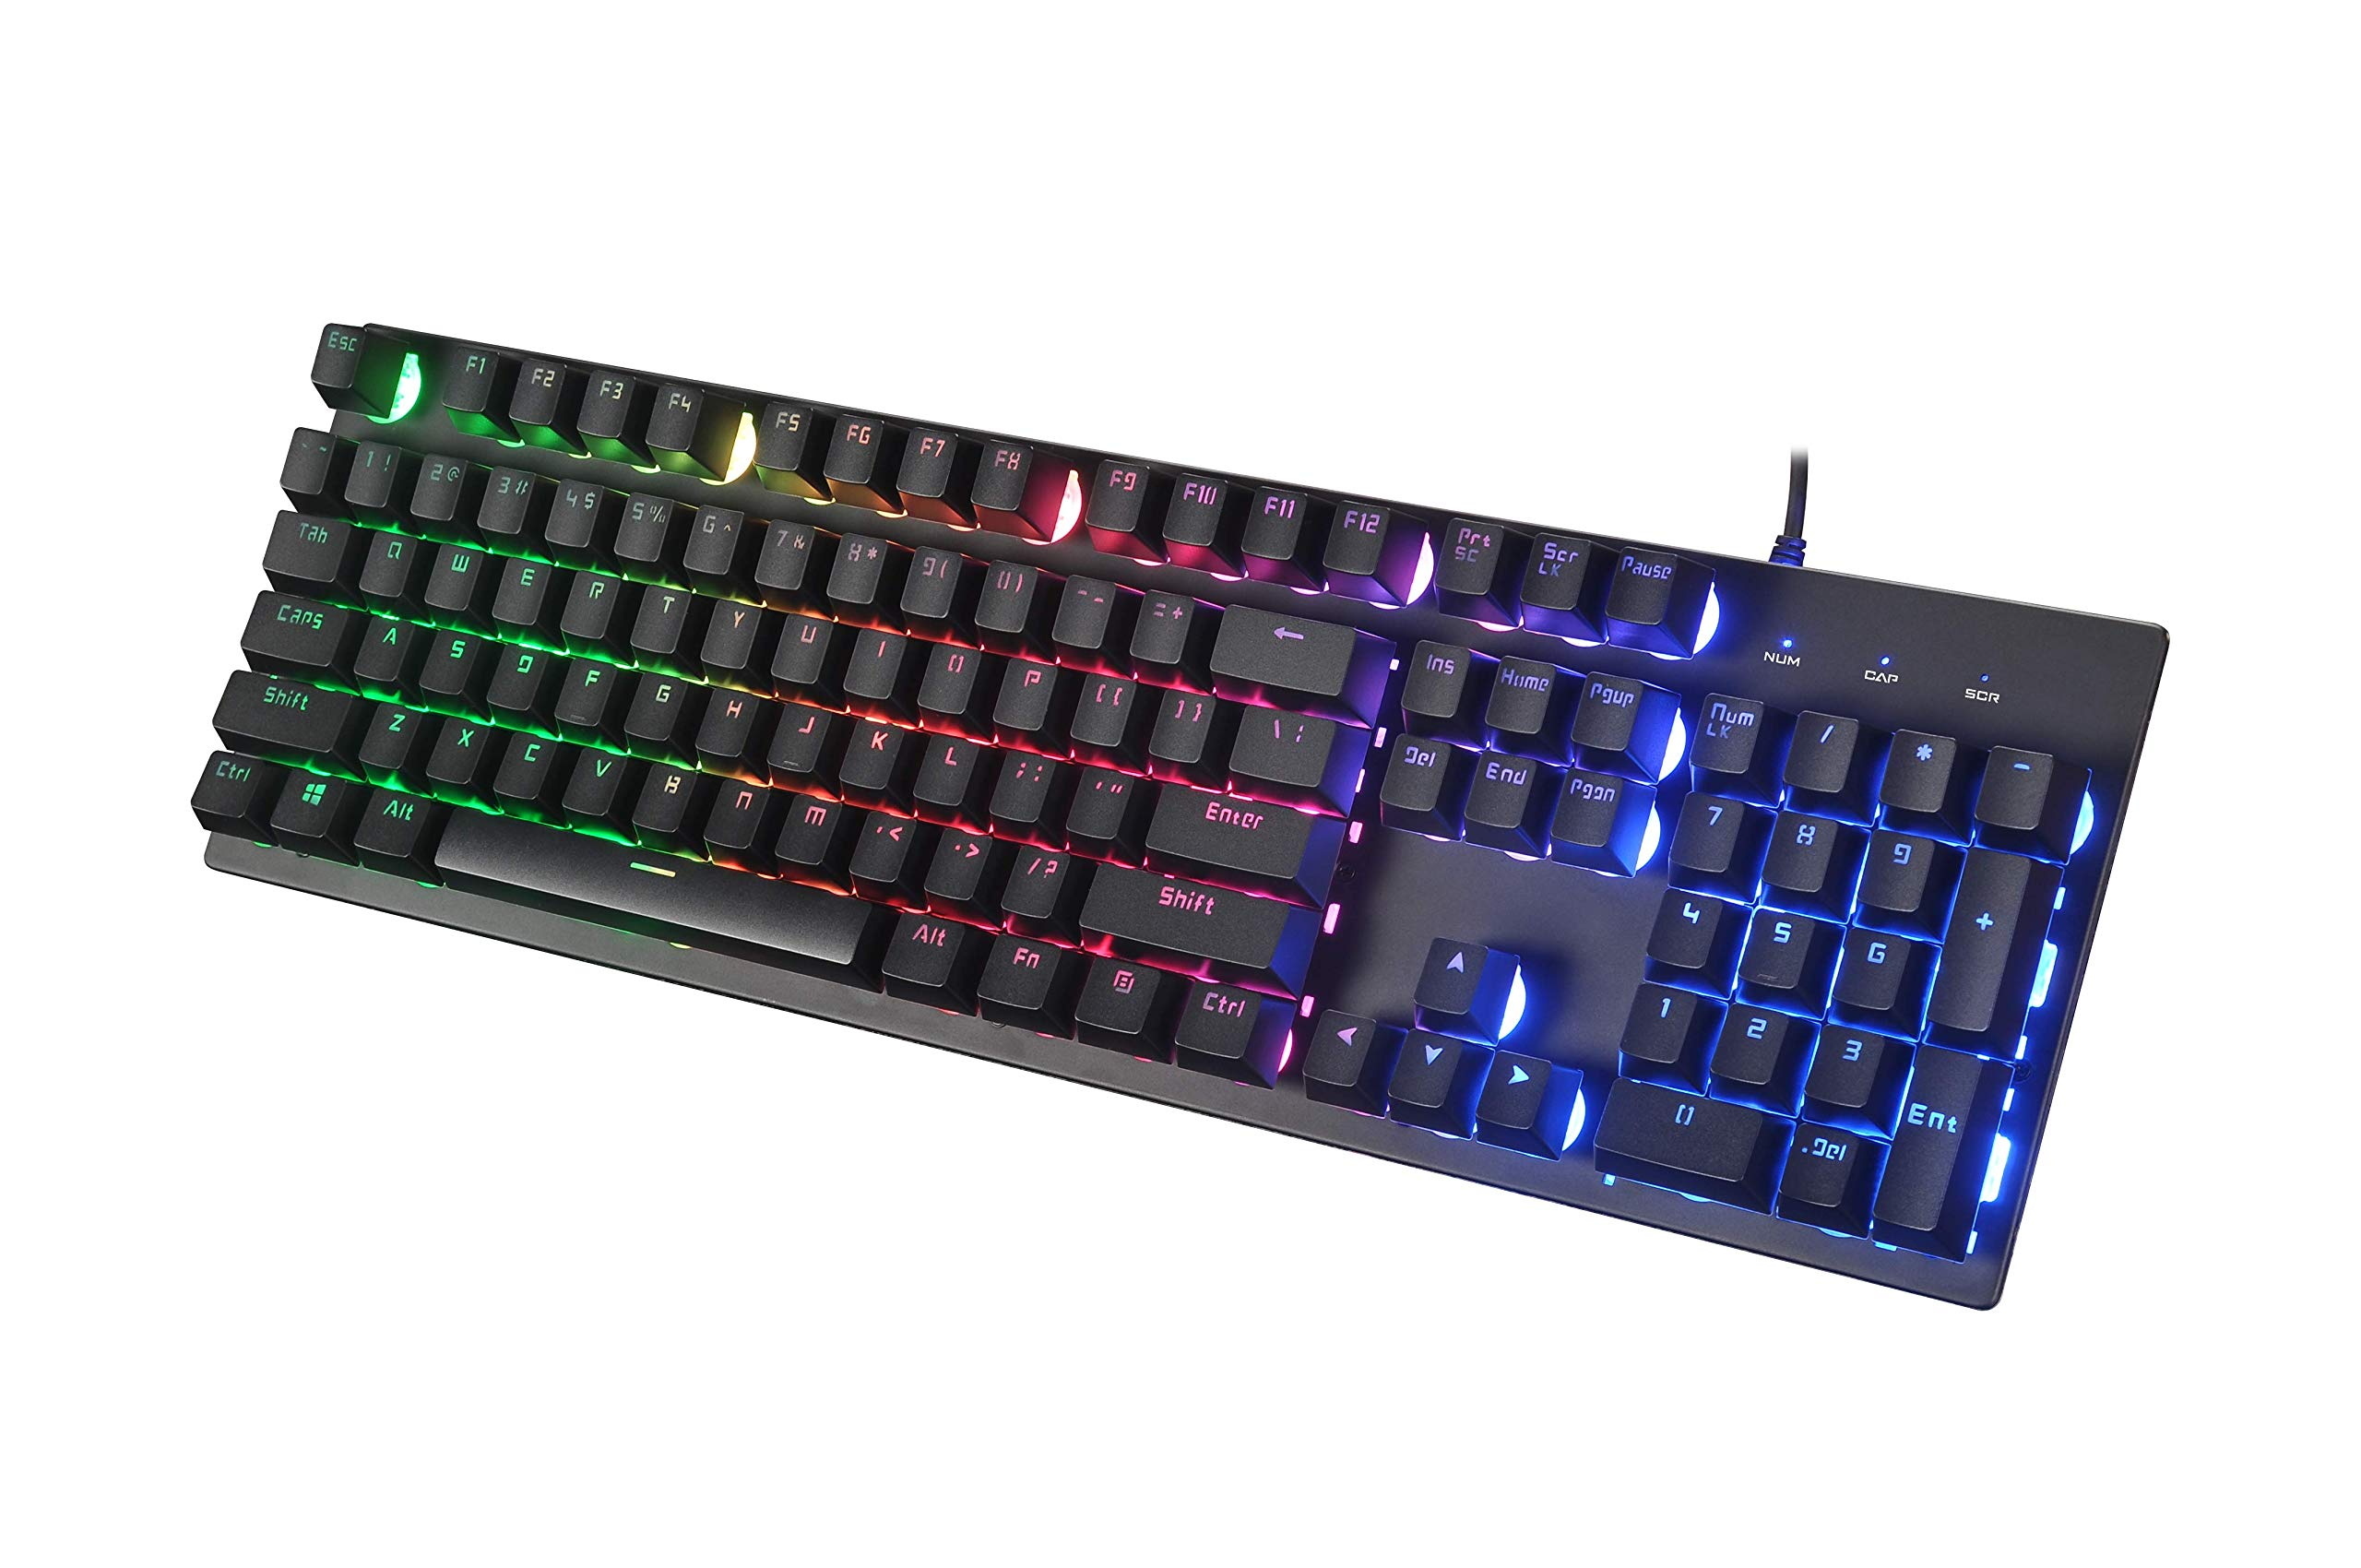 Gaming Keyboard - Ergonomic Design Mechanical Feeling Keyboard with Rainbow LED Backlit, Non-Slip and Spill-Resistant for Gaming and Working